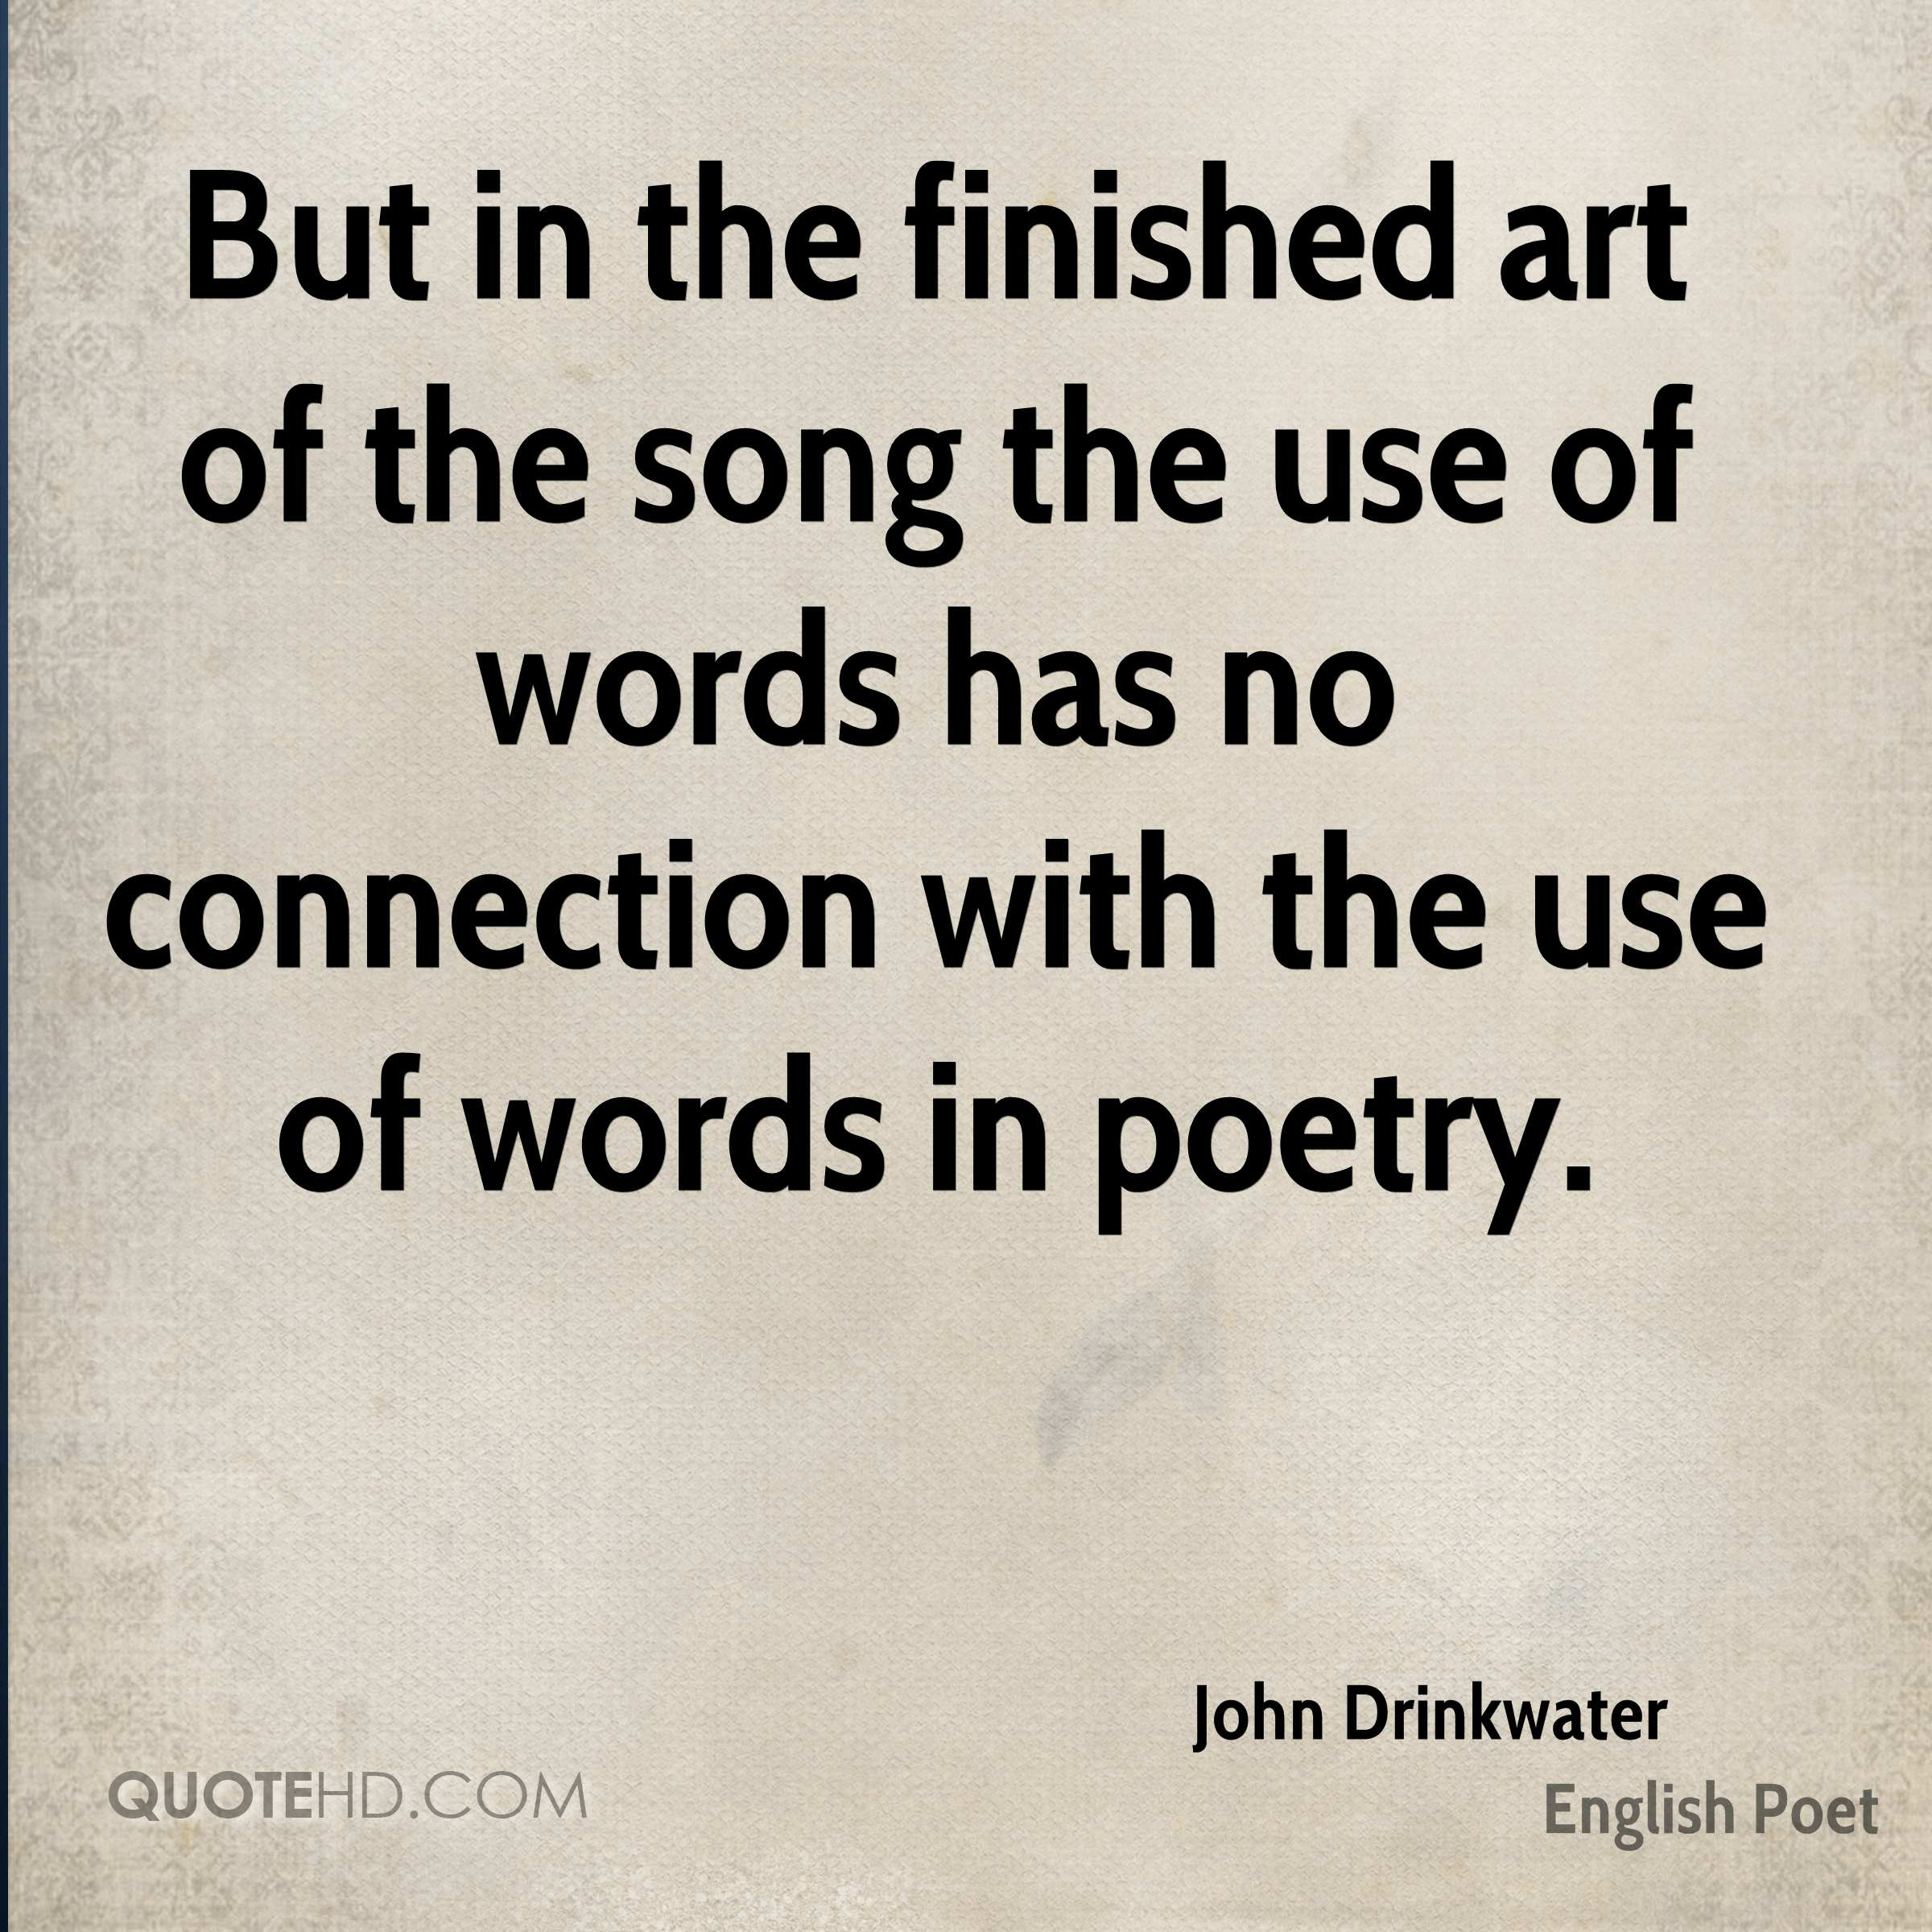 But in the finished art of the song the use of words has no connection with the use of words in poetry.